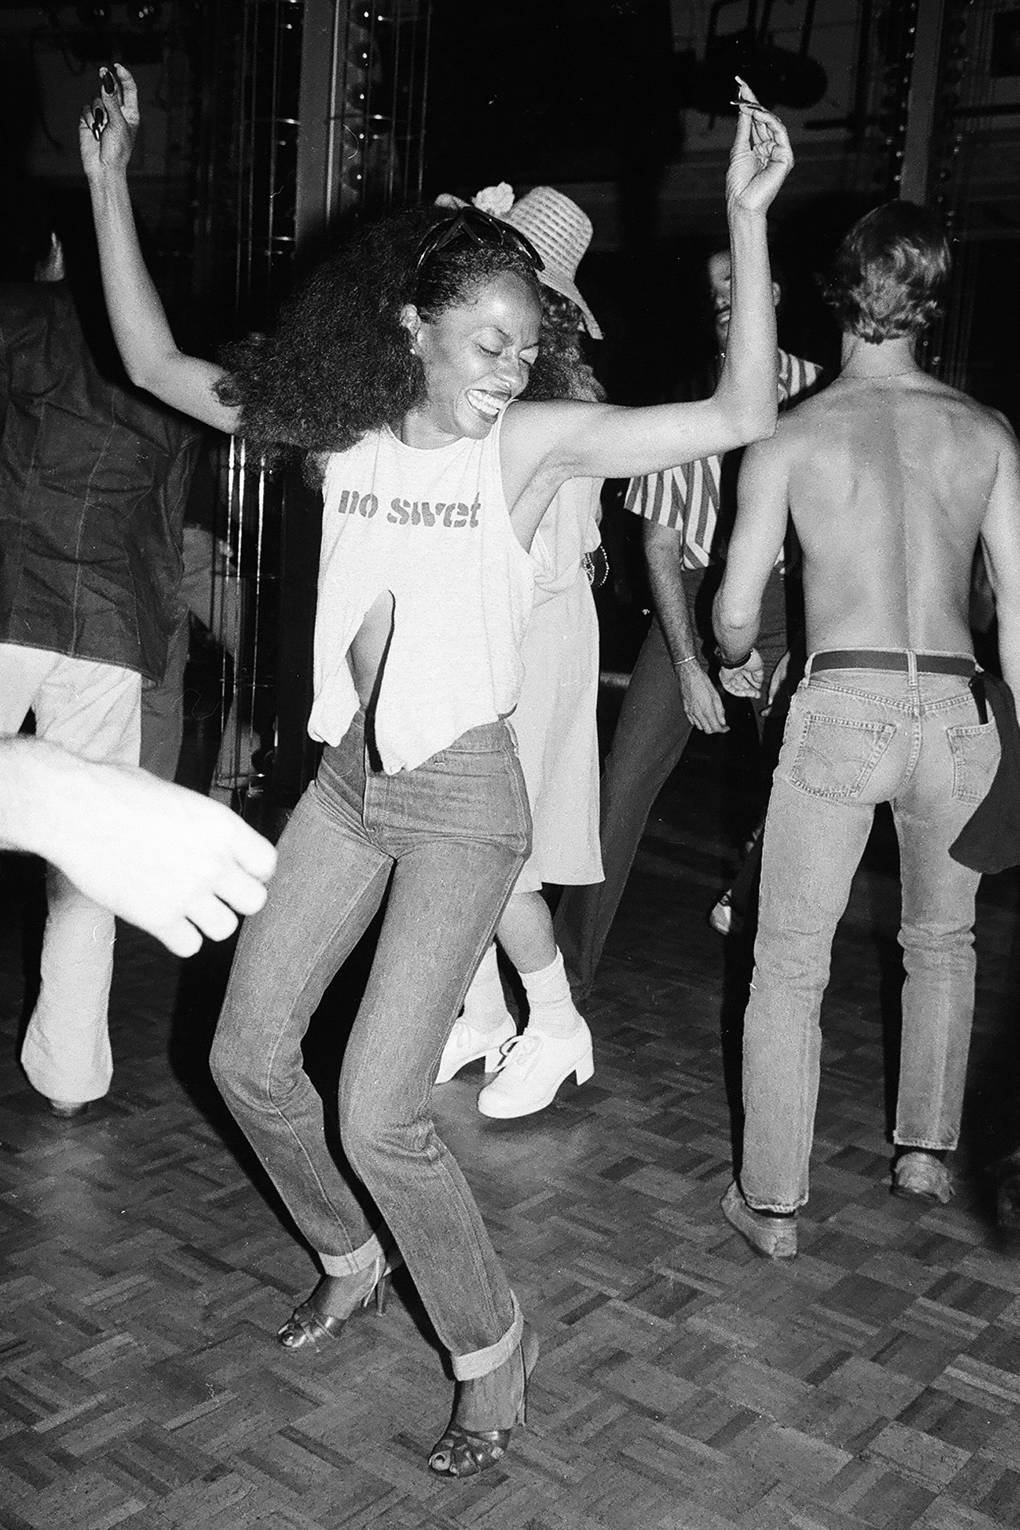 DIANA ROSS, STUDIO 54 1979 - GETTY IMAGES